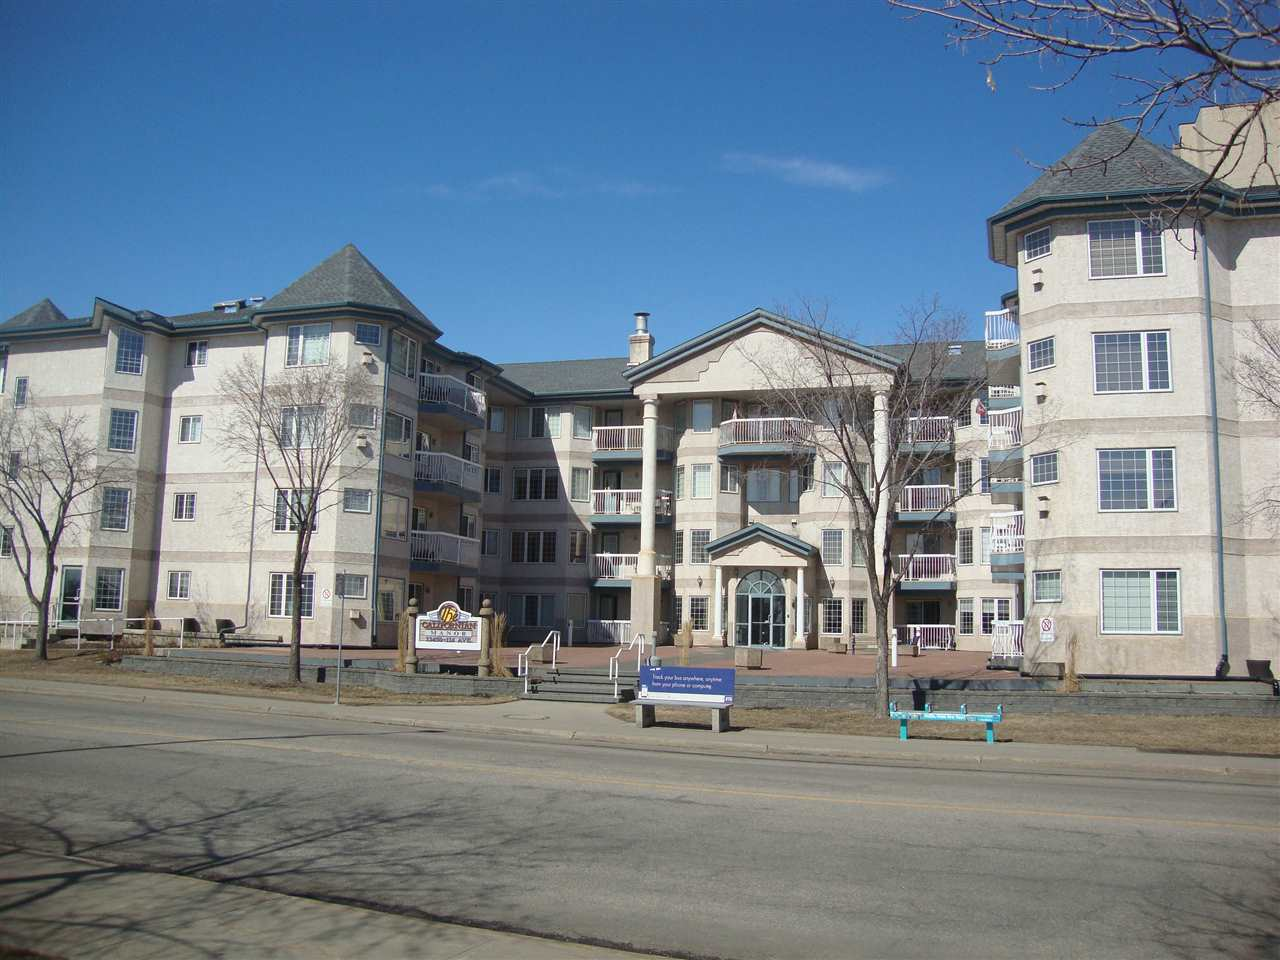 308 13450 114 Avenue NW, 2 bed, 1 bath, at $219,800